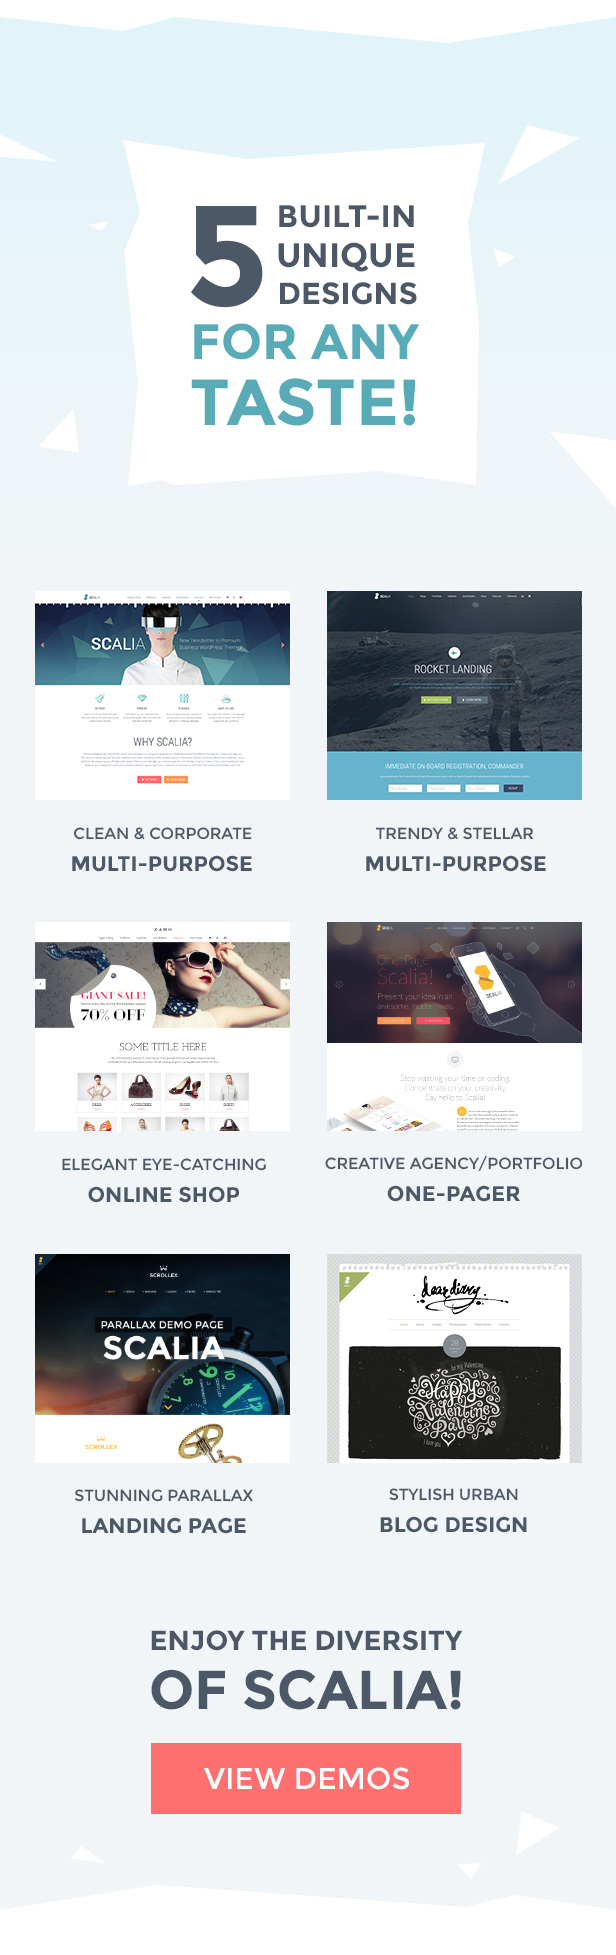 Scalia - Multi-Concept Business, Shop, One-Page, Blog Theme 1